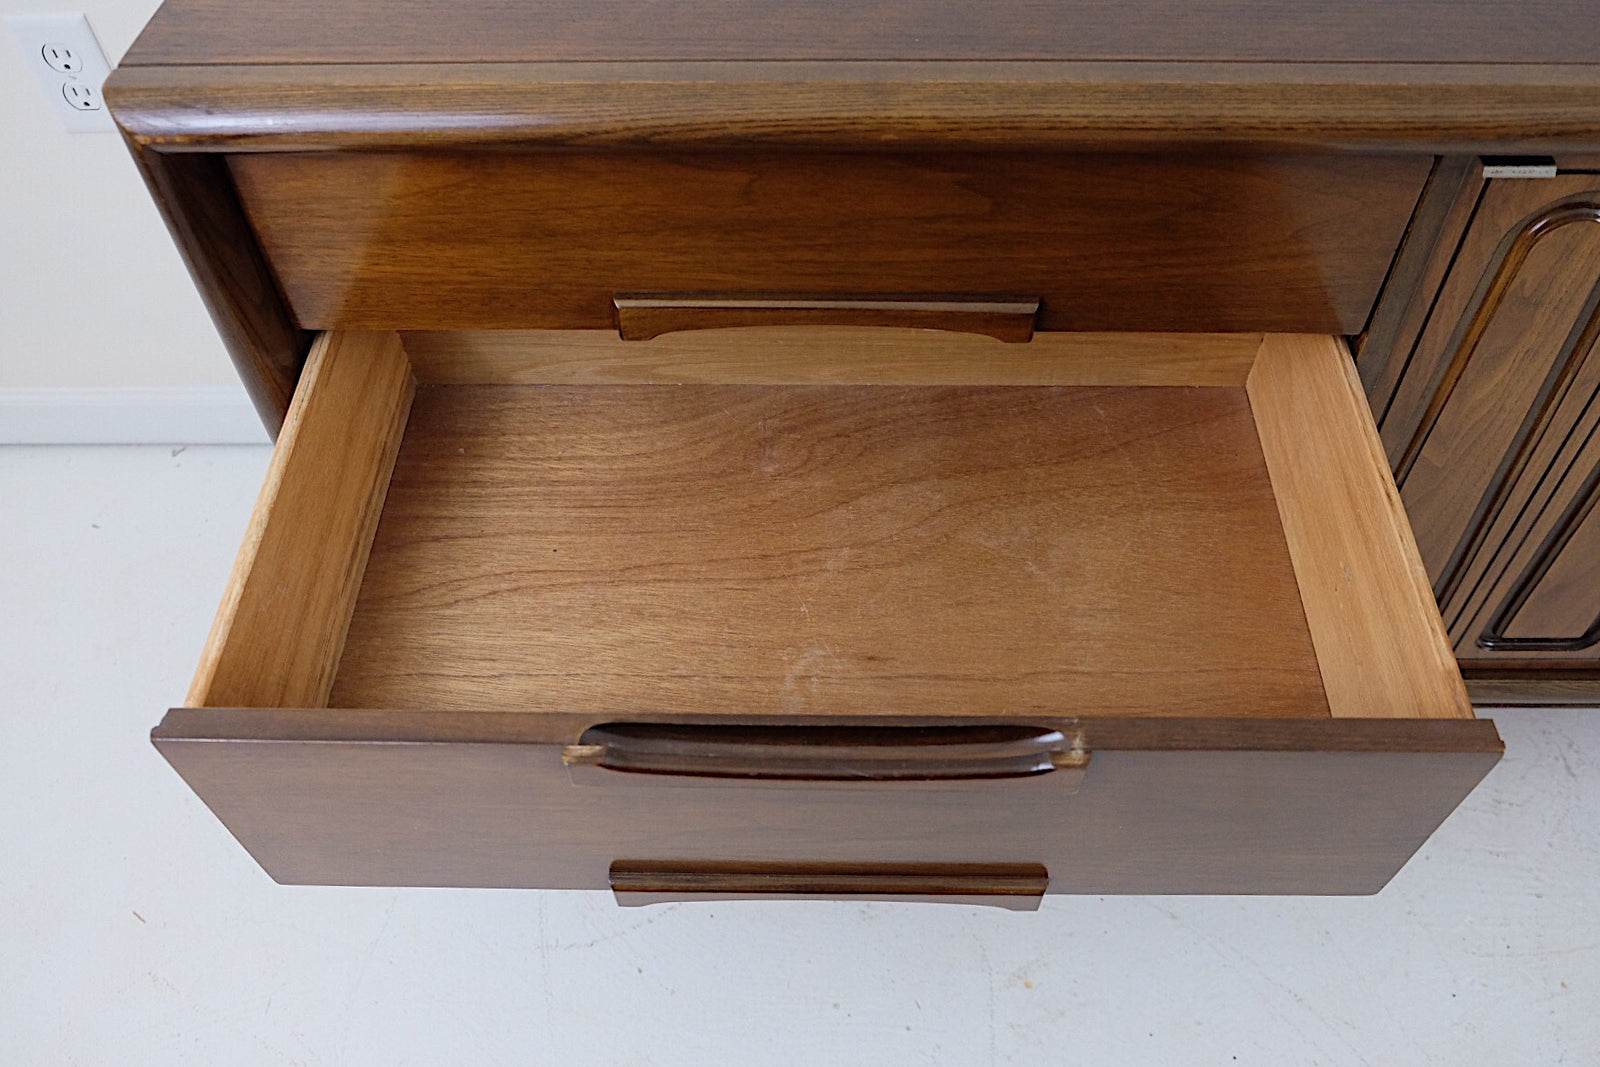 Bassett Mid Century Modern Lowboy Dresser Credenza Carved Details Outlook Collection by Leo Jiranek Nine Drawers